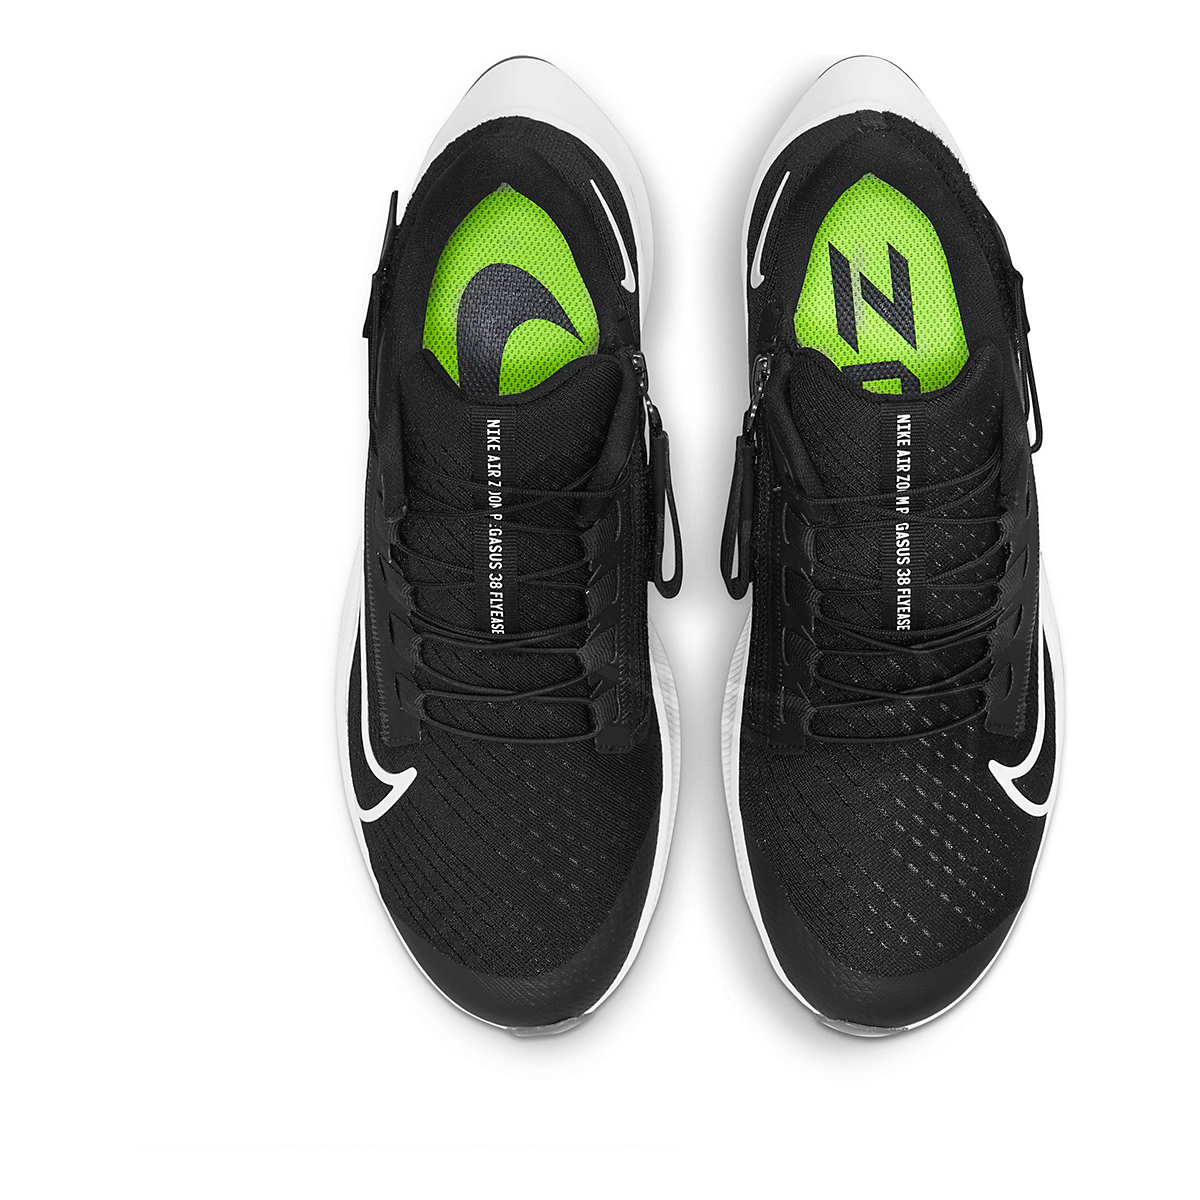 Women's Nike Air Zoom Pegasus 38 Flyease Running Shoe - Color: Black/White/Anthracite - Size: 5 - Width: Regular, Black/White/Anthracite, large, image 4